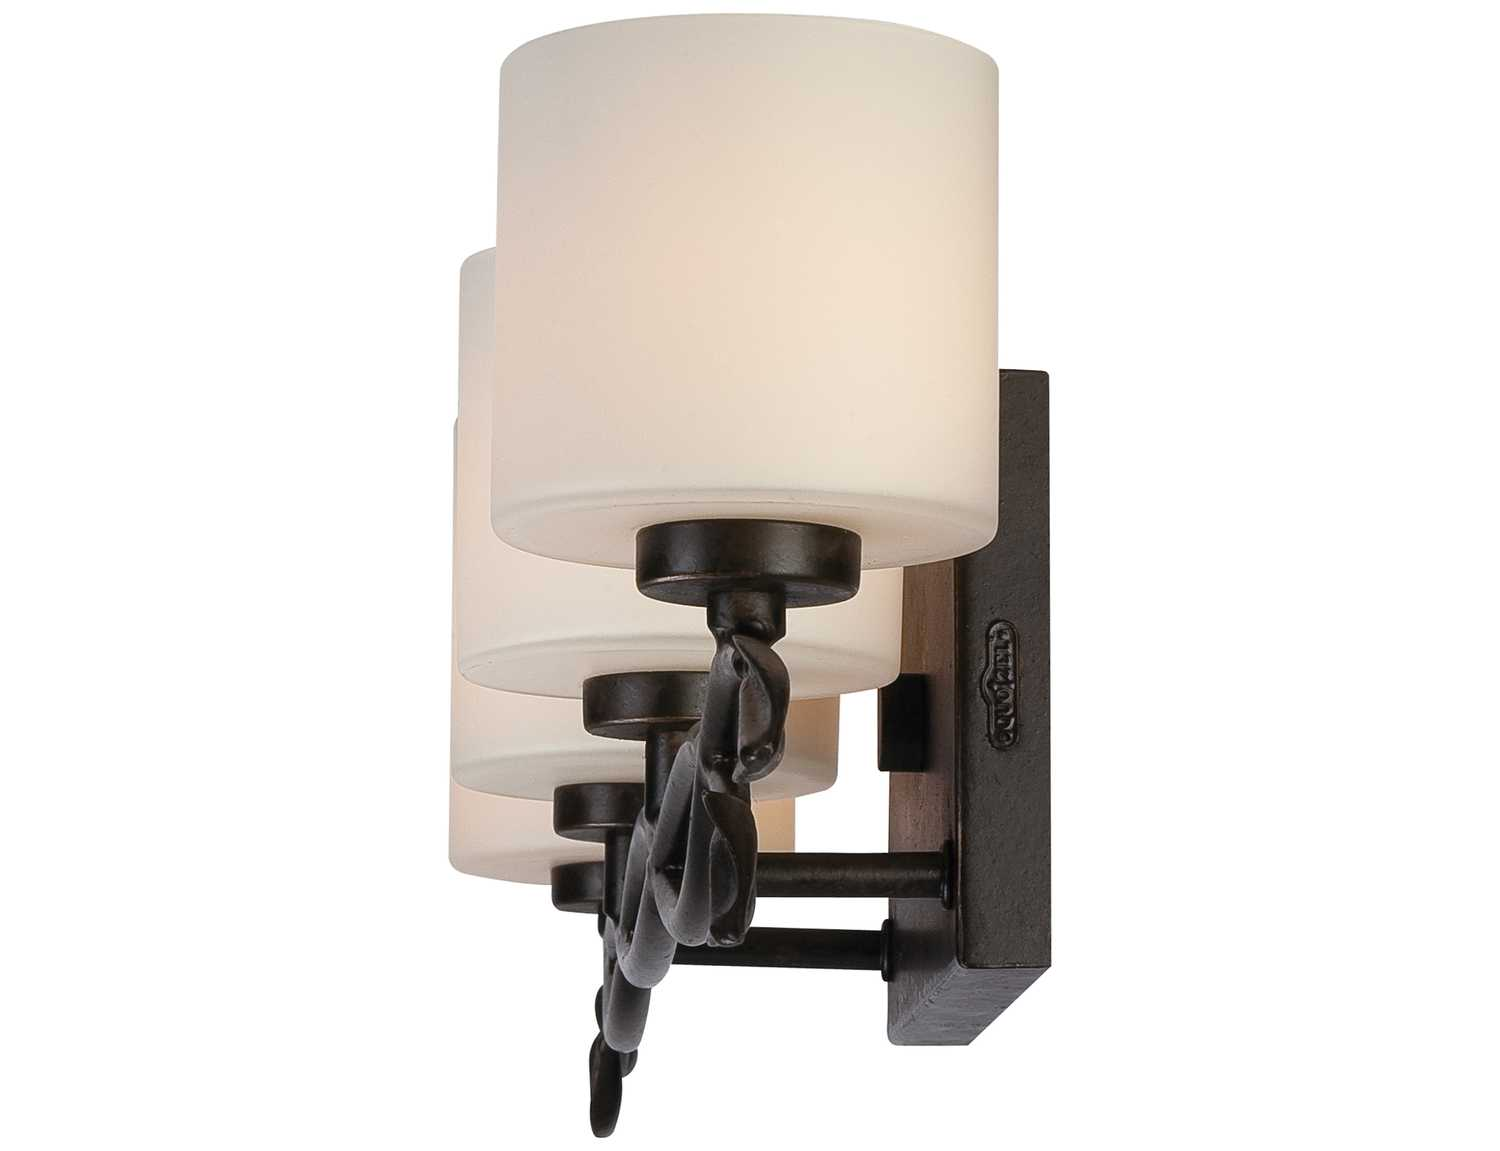 Quoizel Vanity Lights : Quoizel Erin Bath Dark Bronze Four-Light Vanity Light ERN8604IB